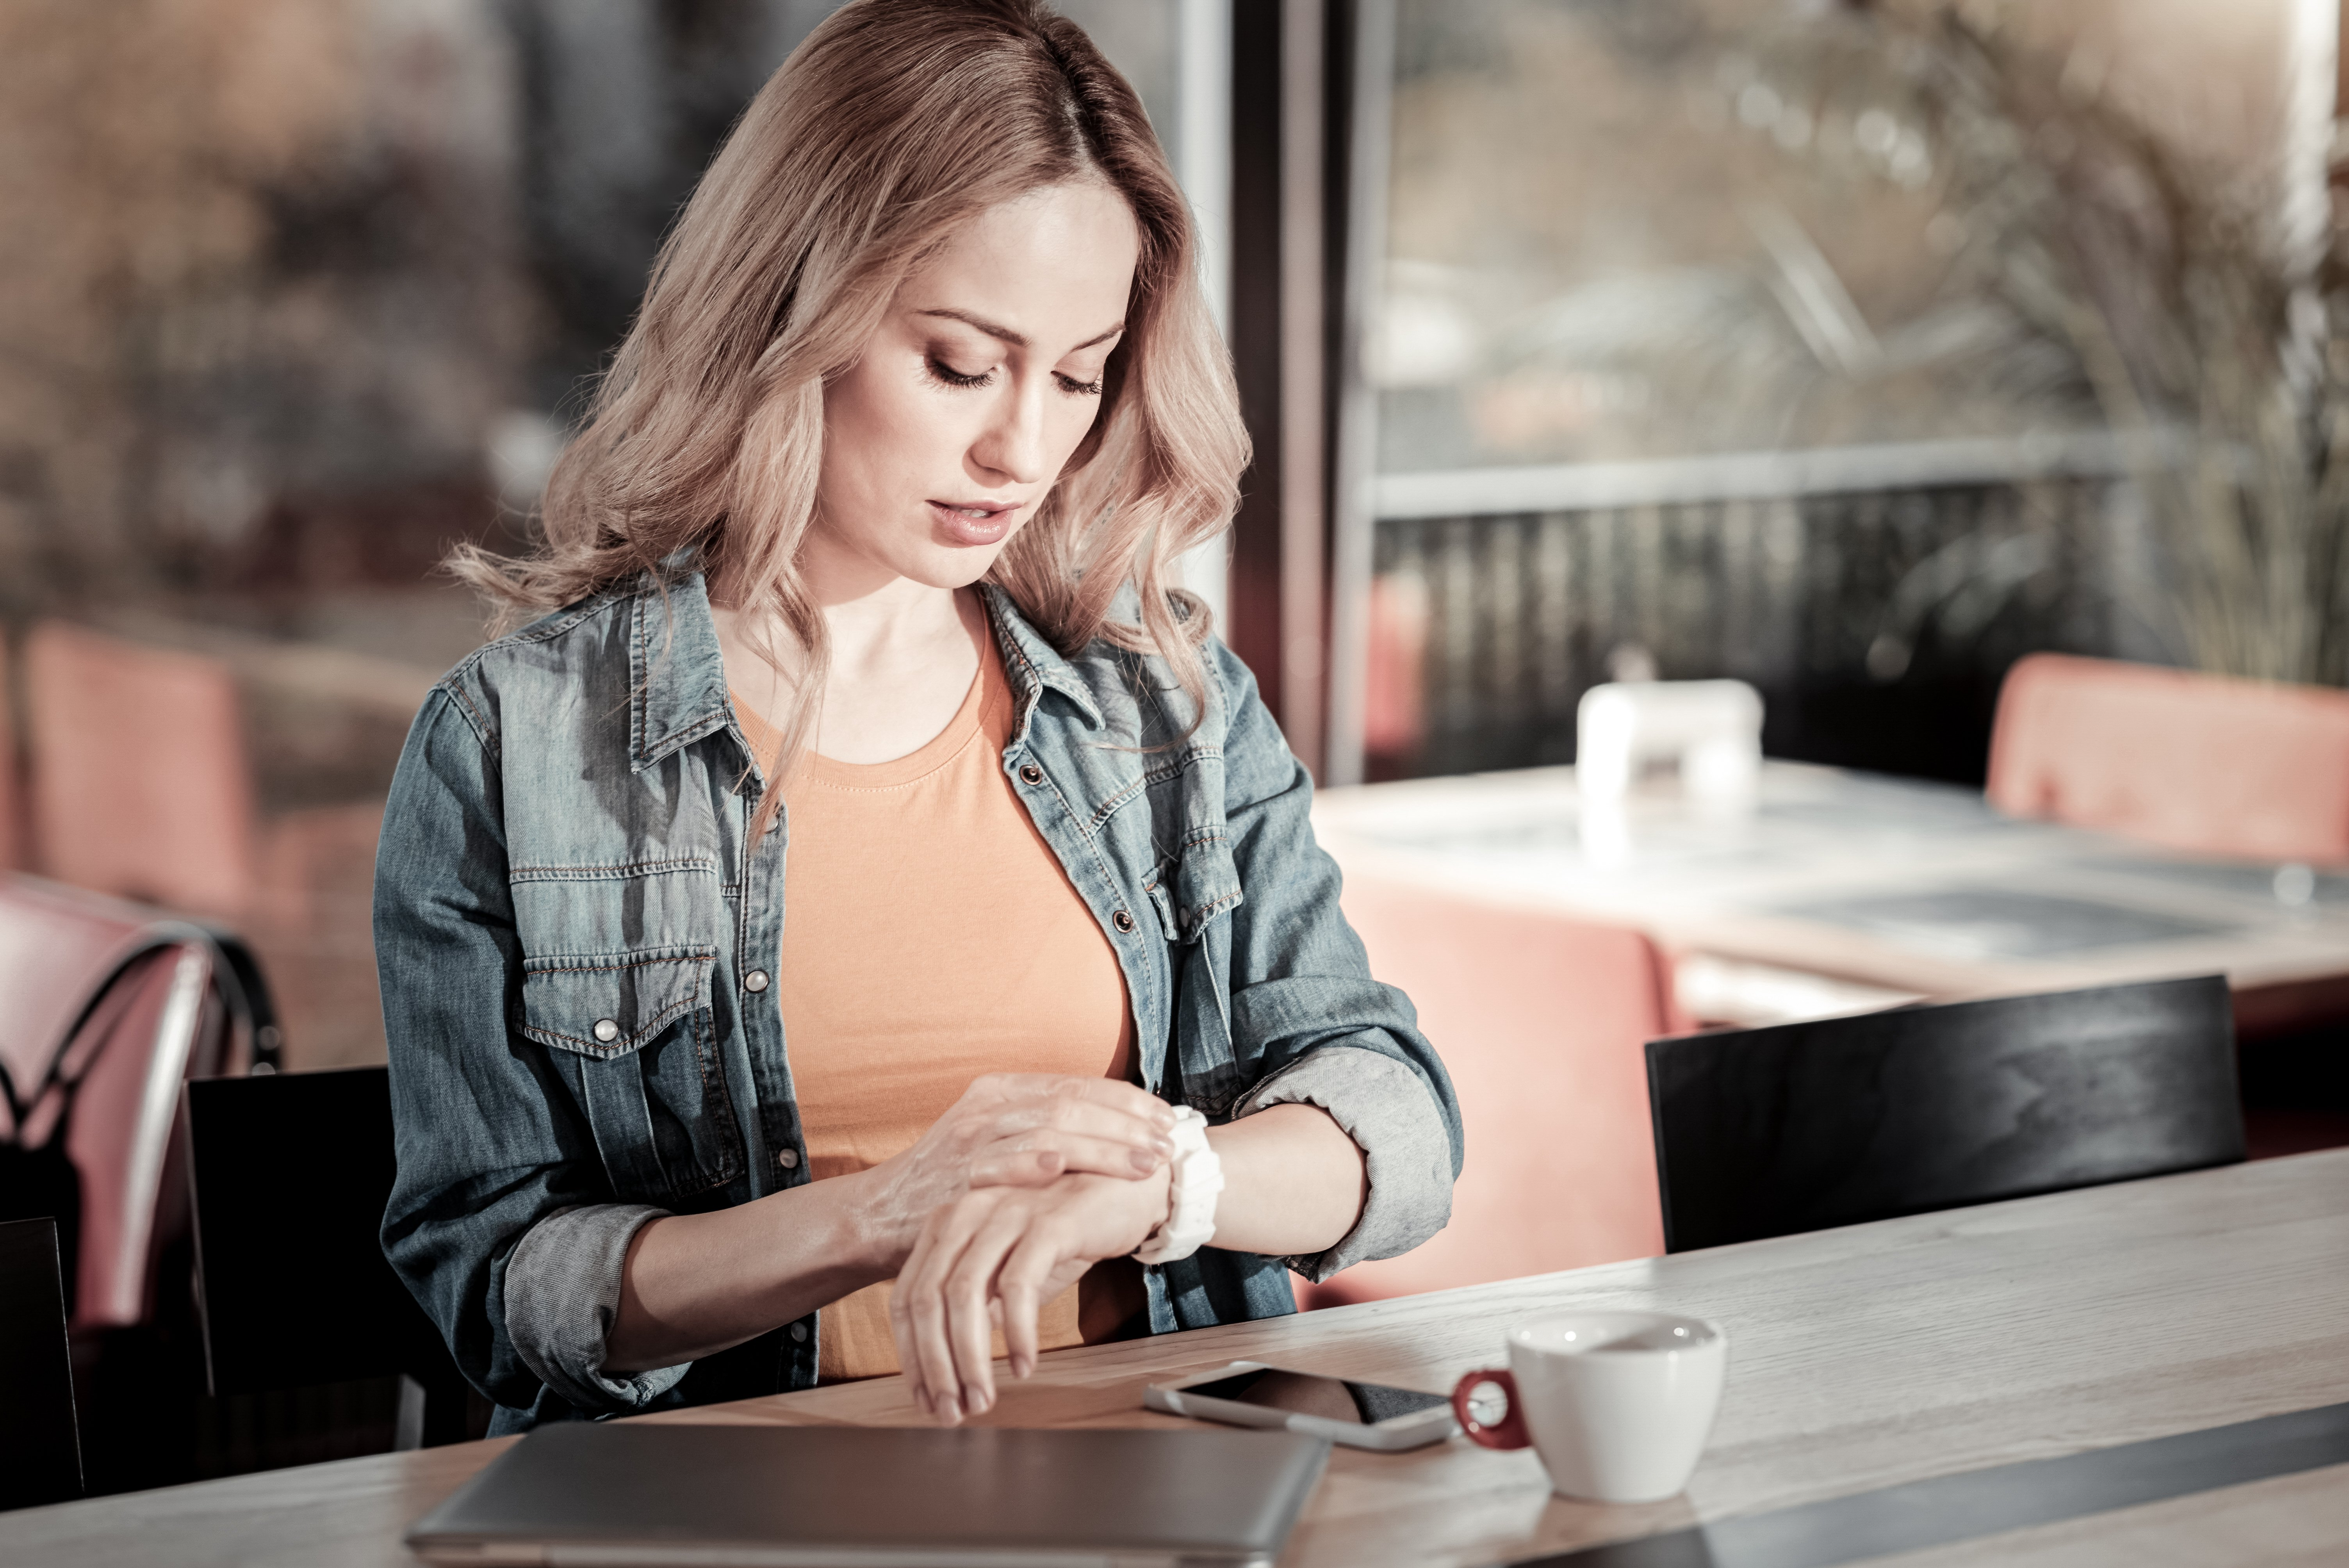 Woman looking at her watch. Image credit: Shutterstock